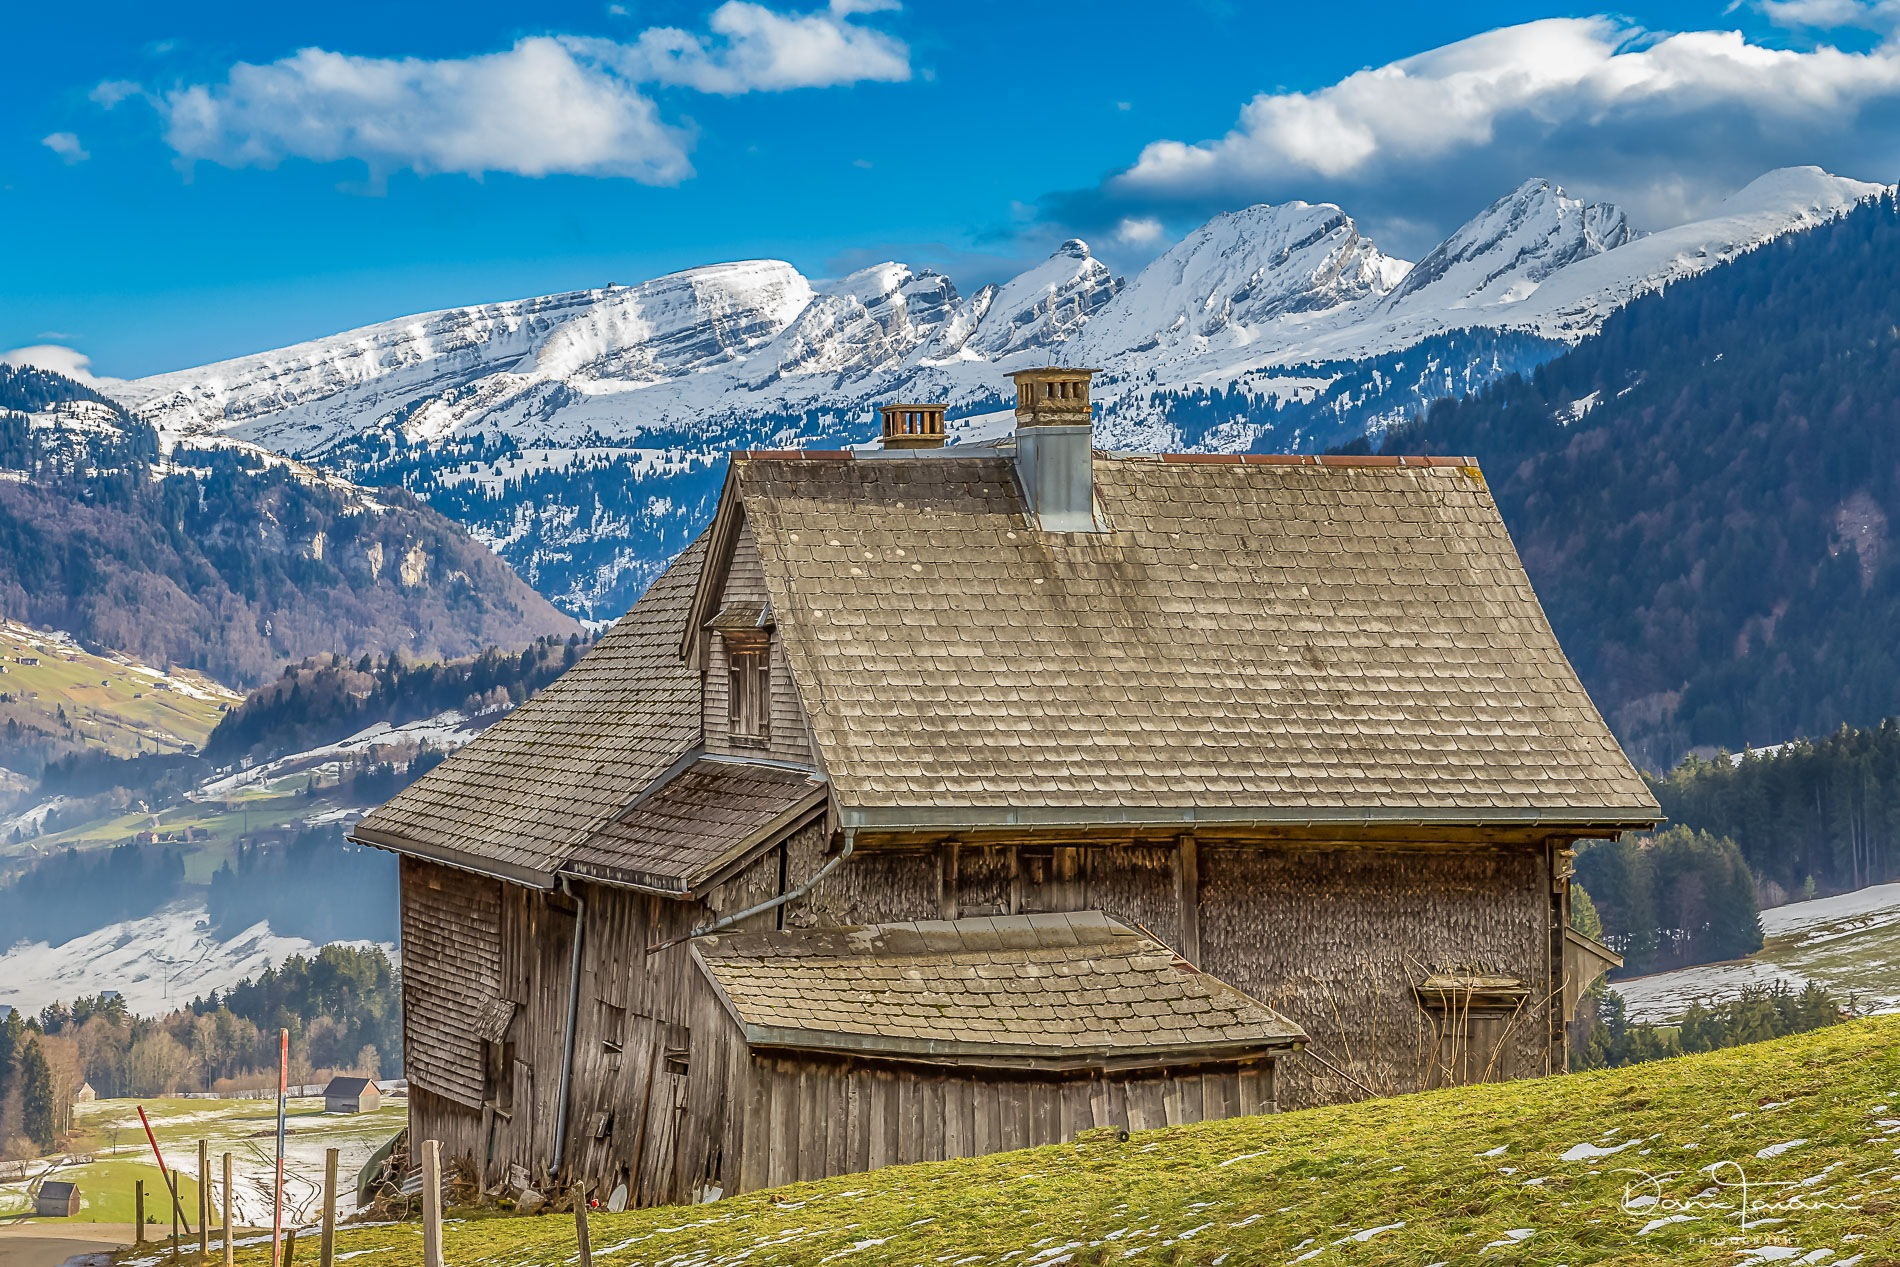 Old house in the mountains by Dani Taiani